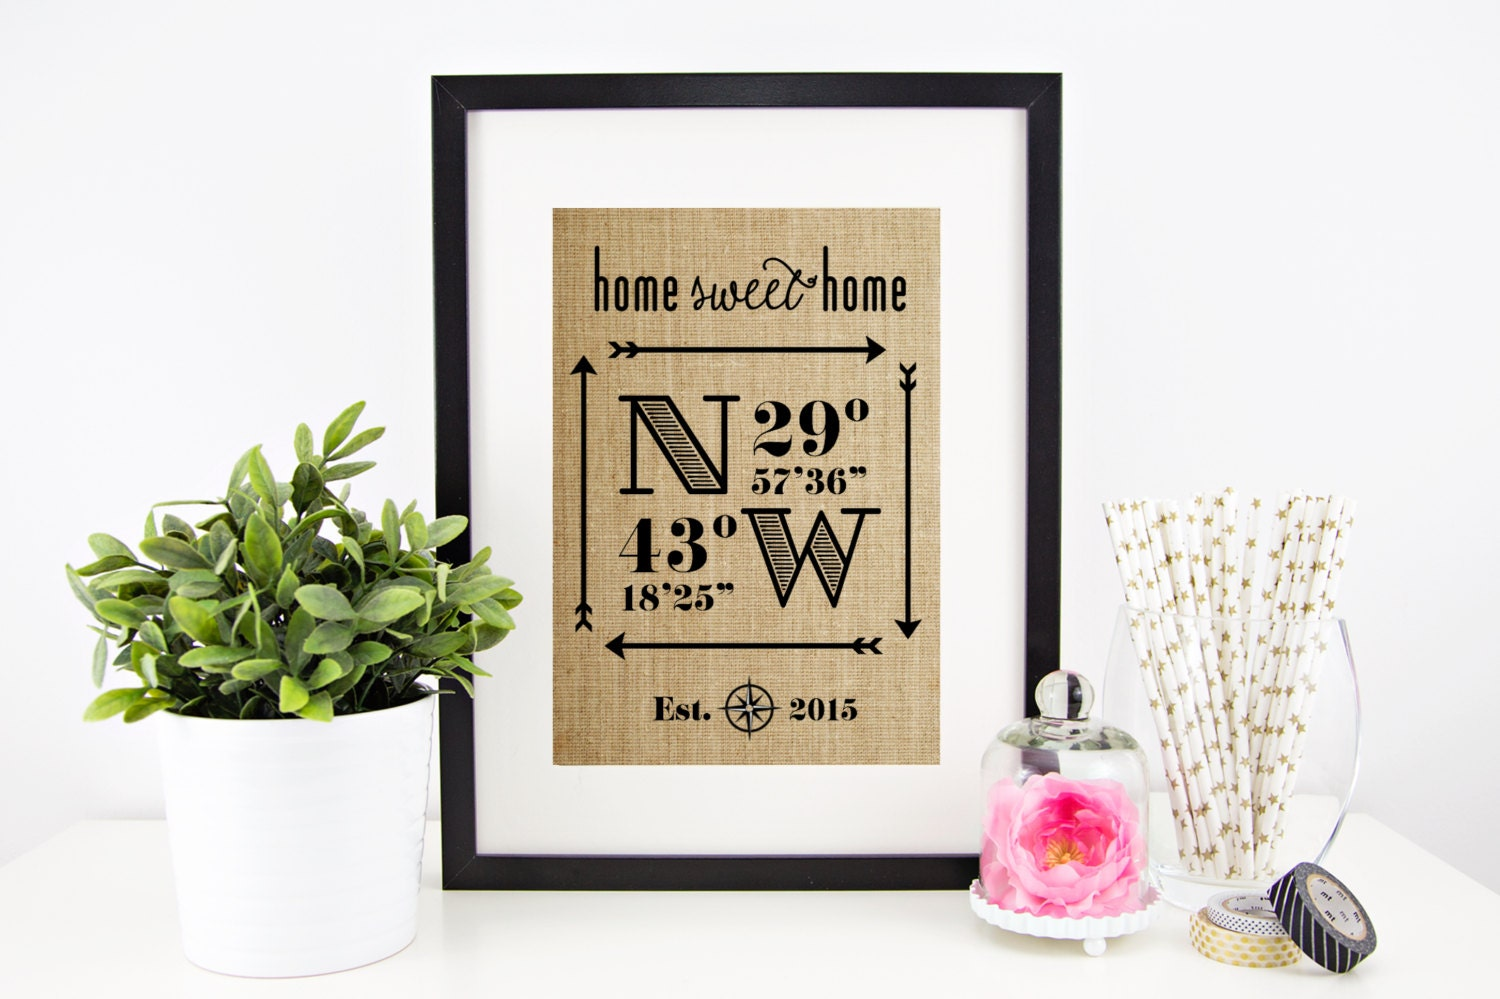 New home housewarming gift wedding gifts for couple latitude zoom negle Image collections